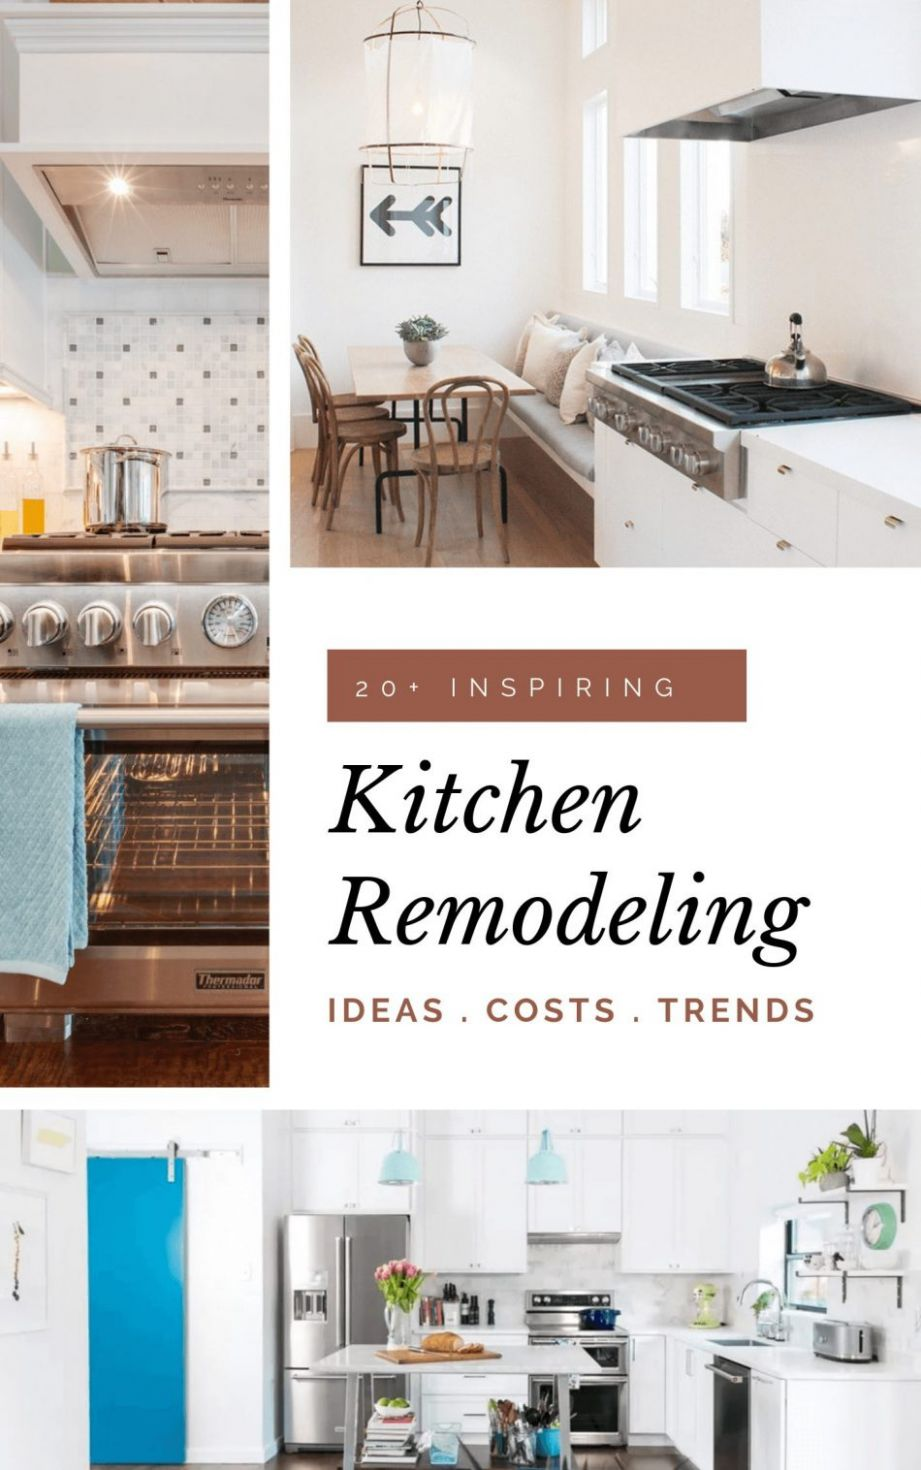 8+ Inspiring Kitchen Remodeling Ideas, Costs, & Trends In 88 - kitchen ideas and costs